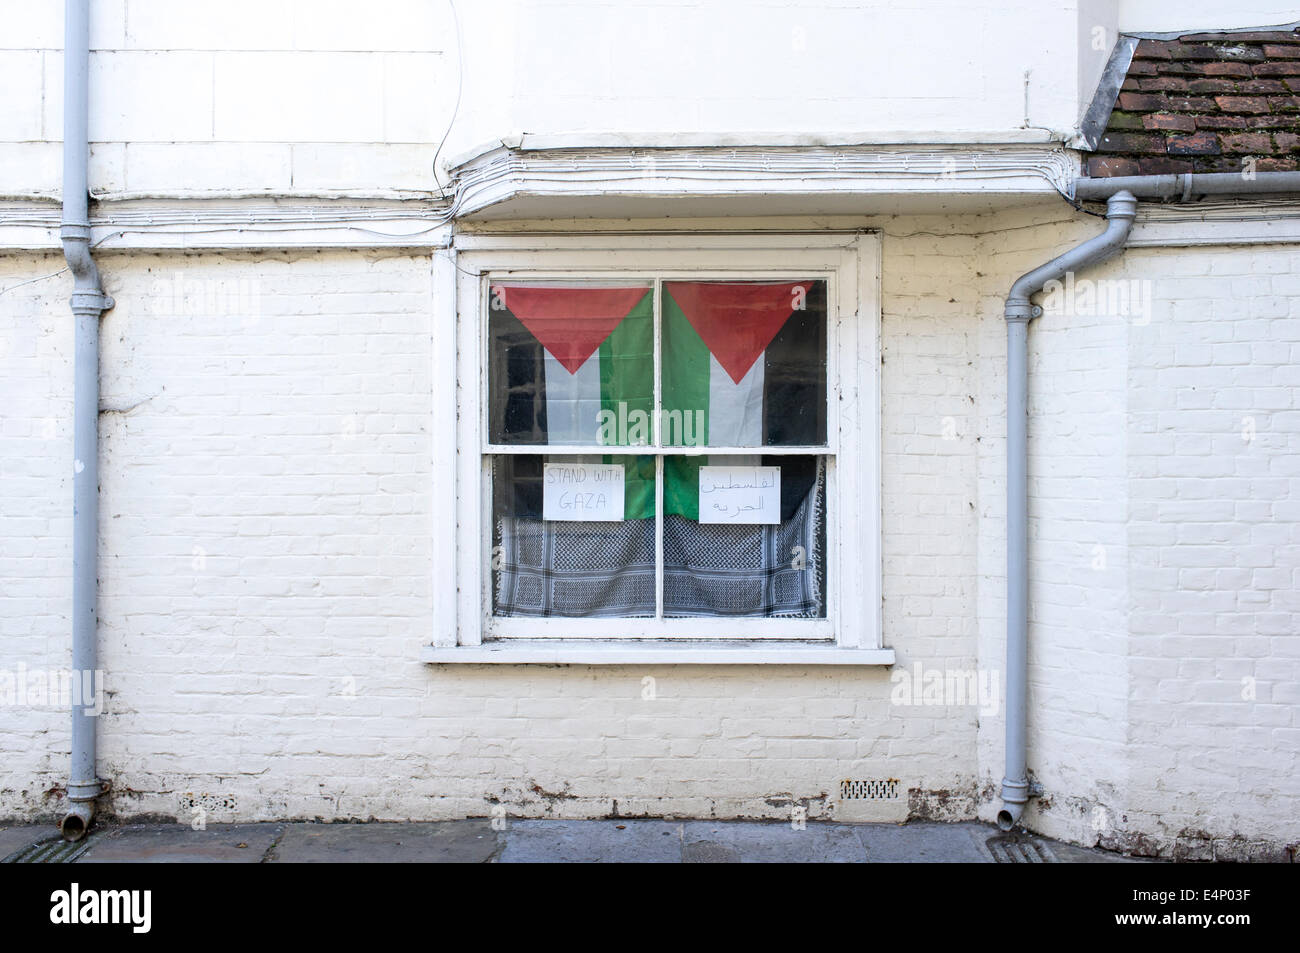 Flag of Palestine hanging in UK window with hand written notice in English and Arabic saying 'stand with Gaza' - Stock Image